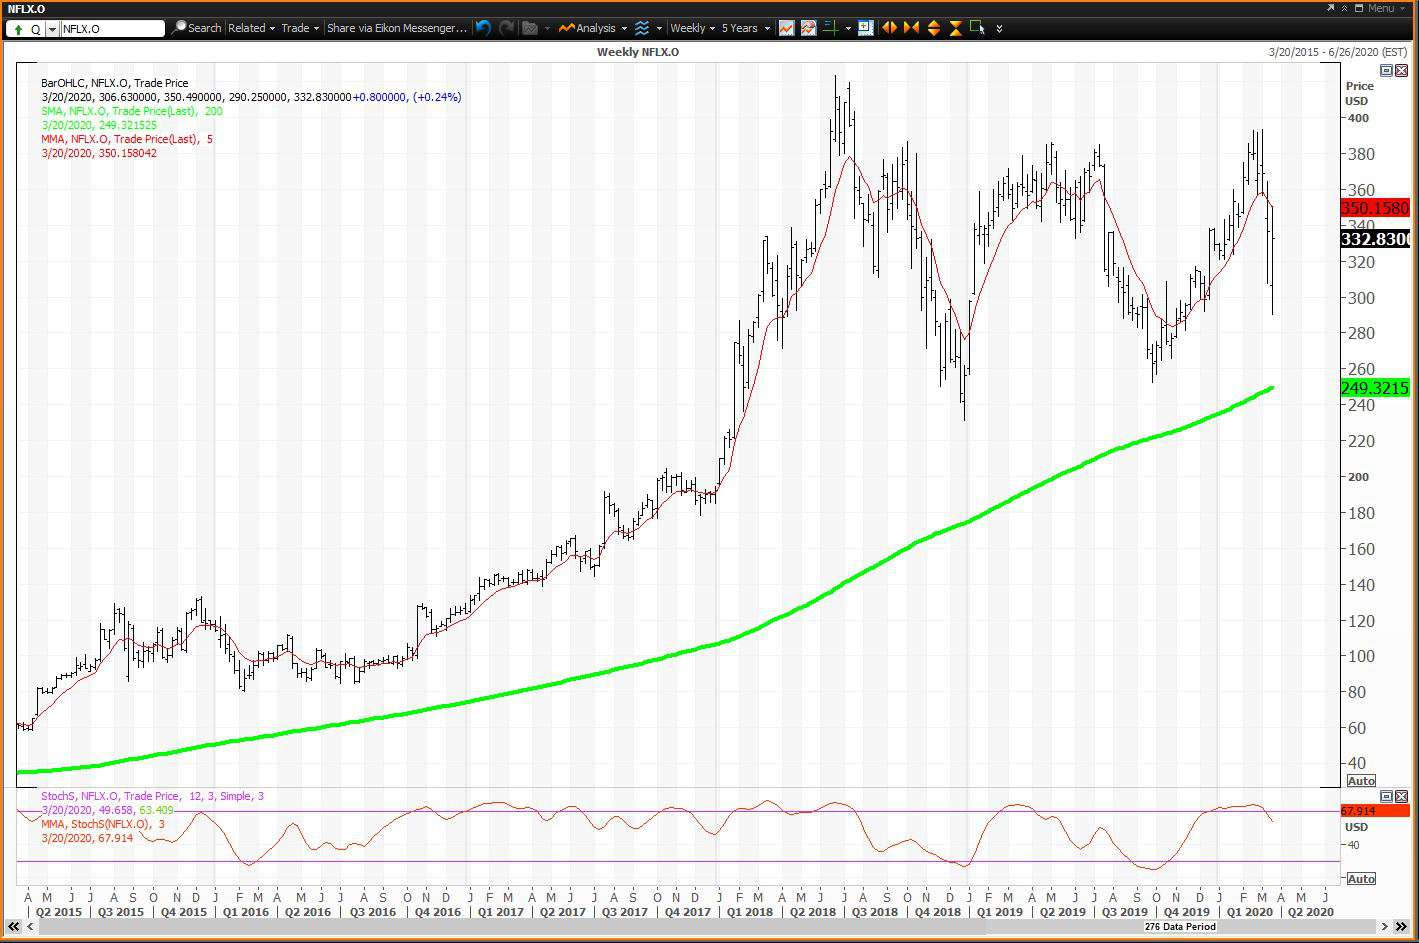 Weekly chart showing the share price performance of Netflix, Inc. (NFLX)